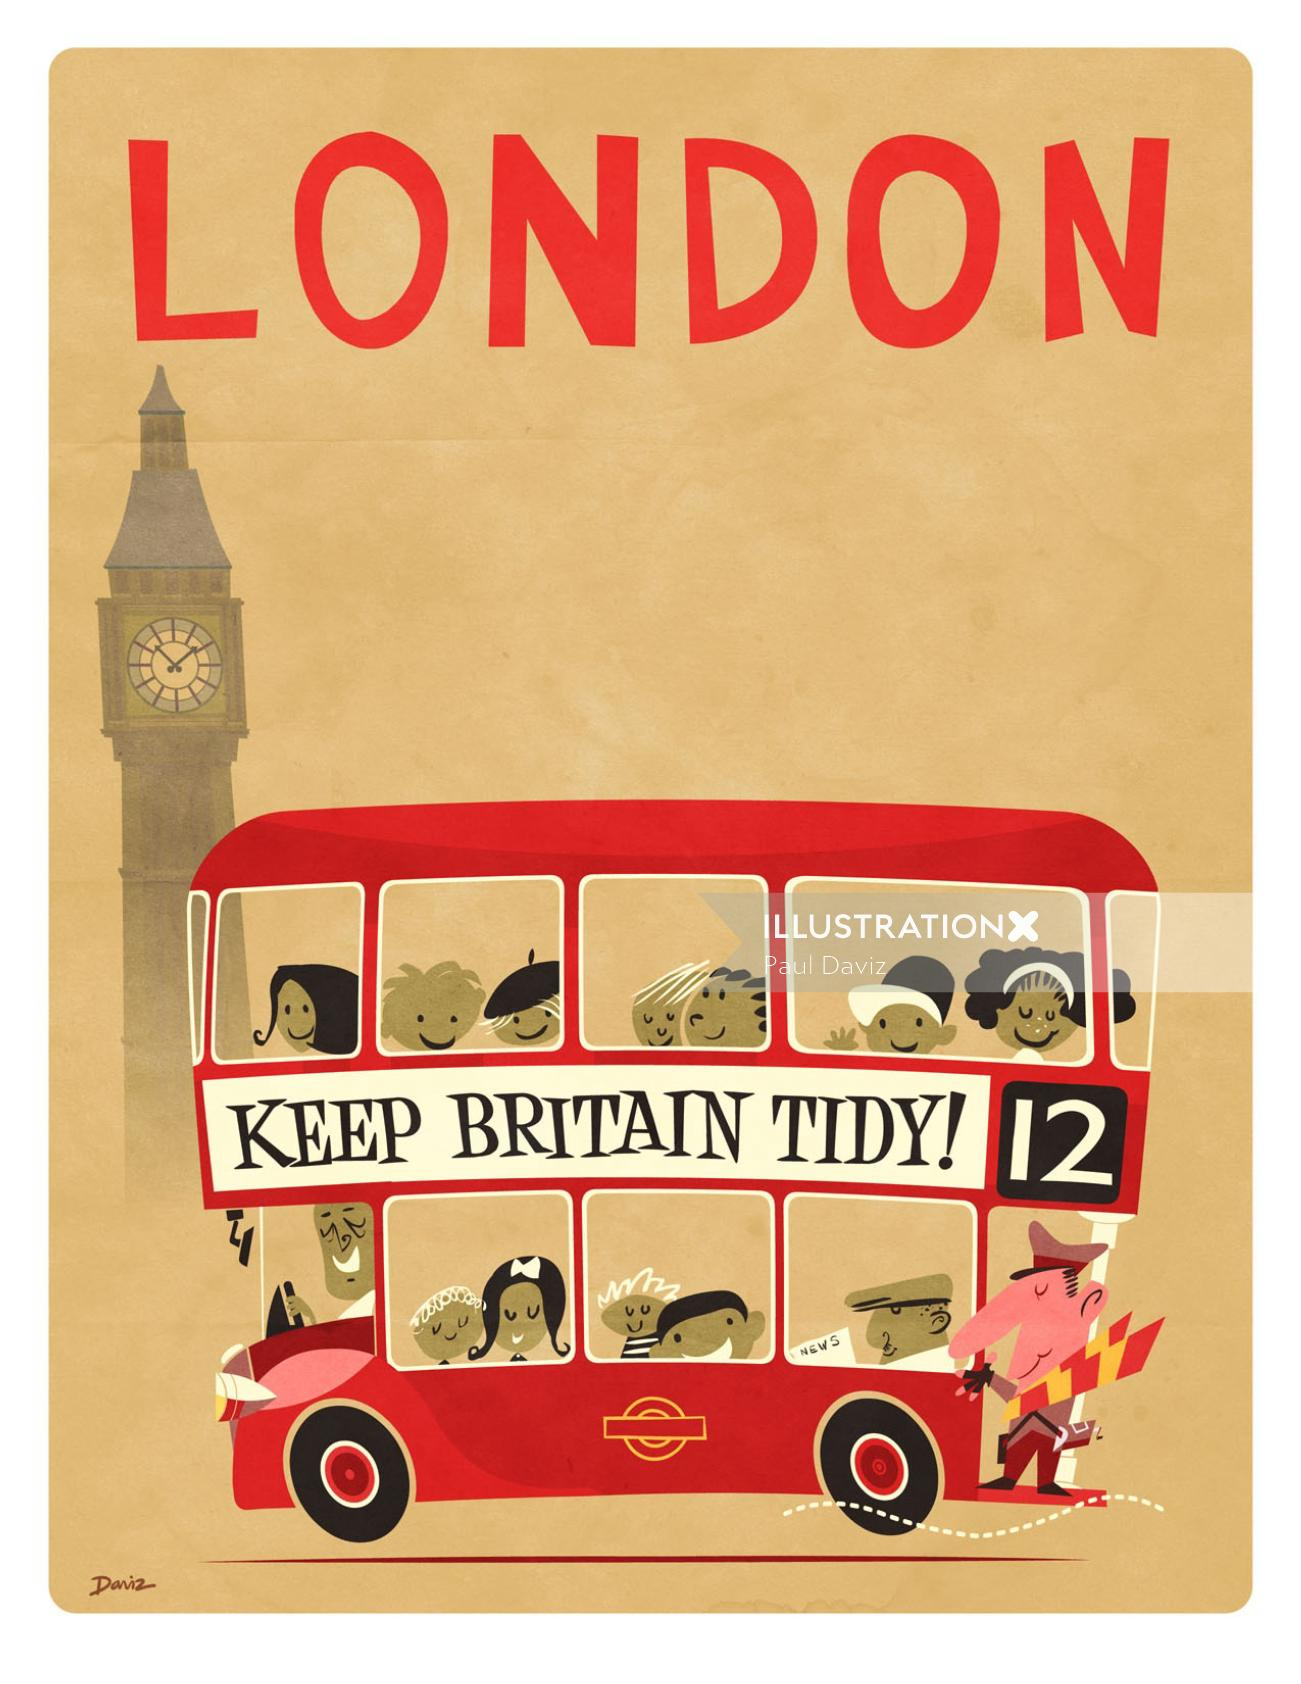 Souvenir of London Bus poster for Daviz Industries